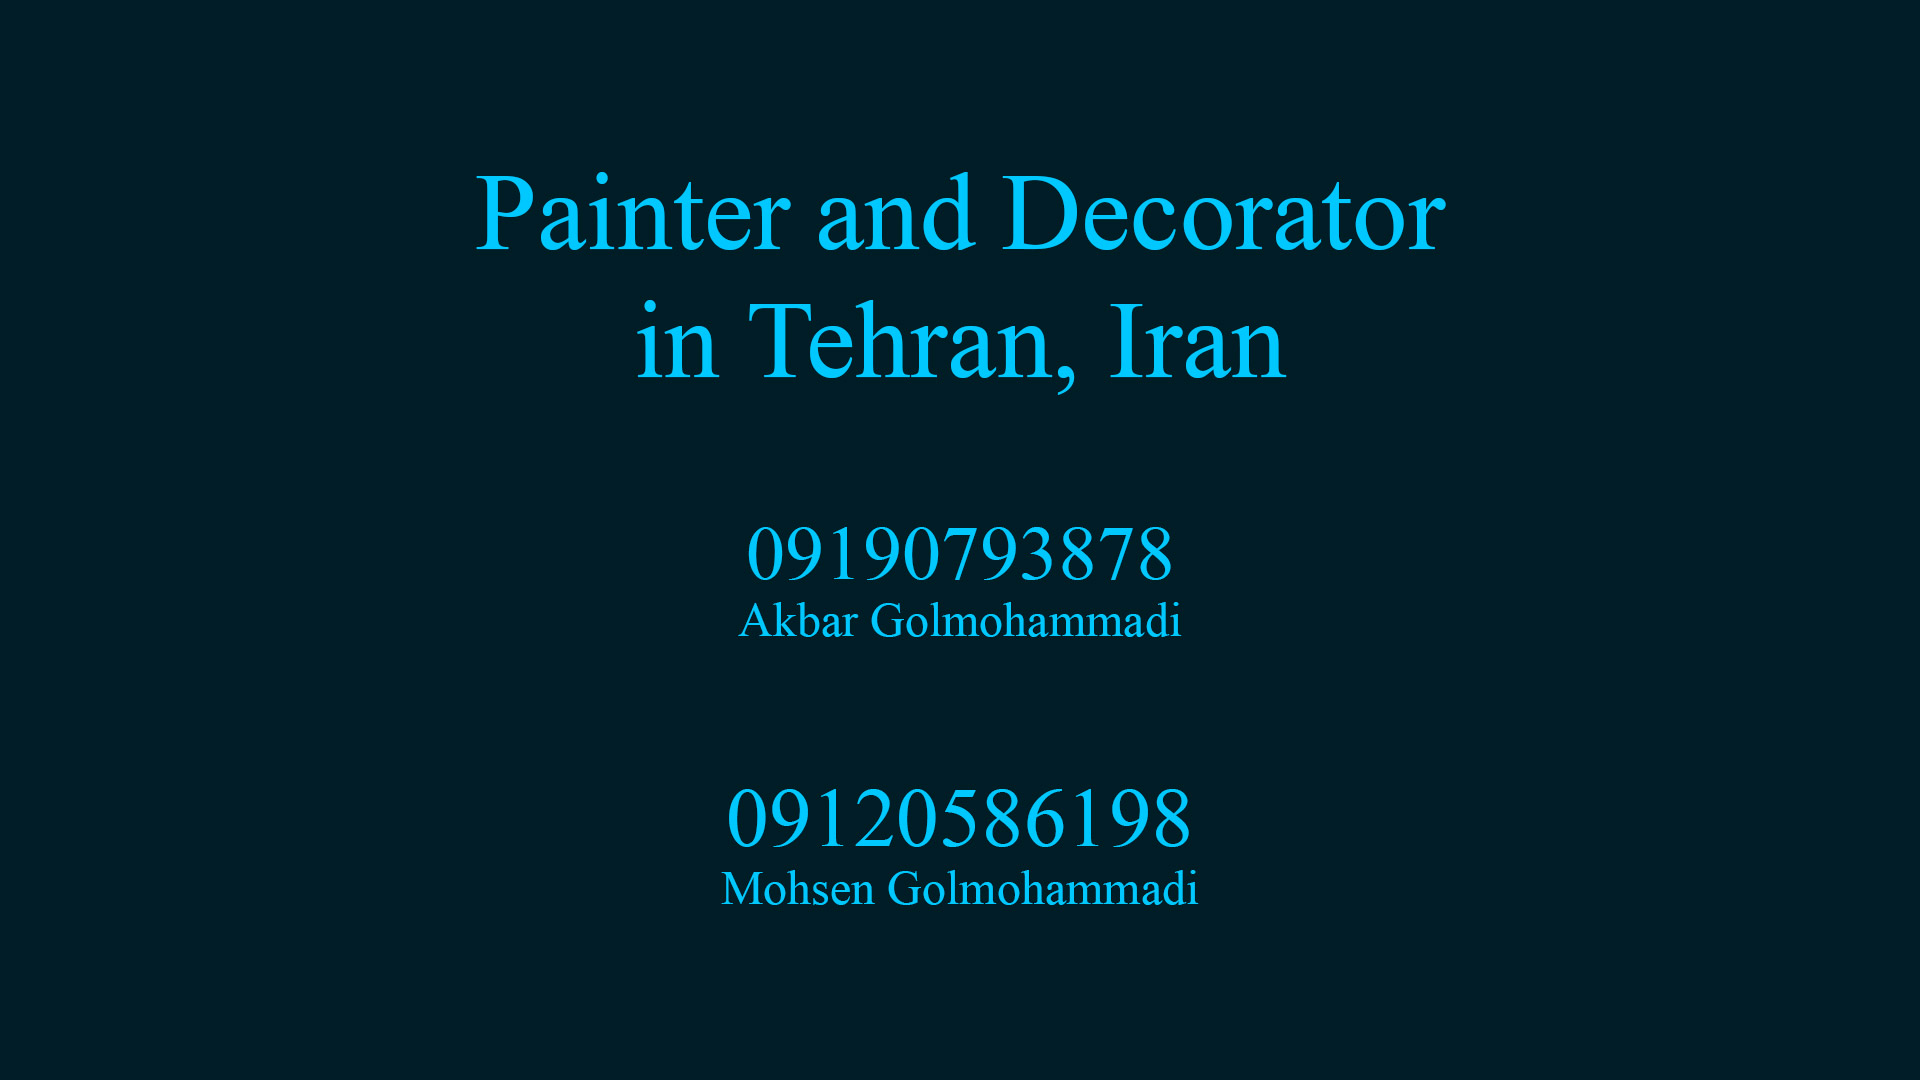 Painter and Decorator in tehran iran